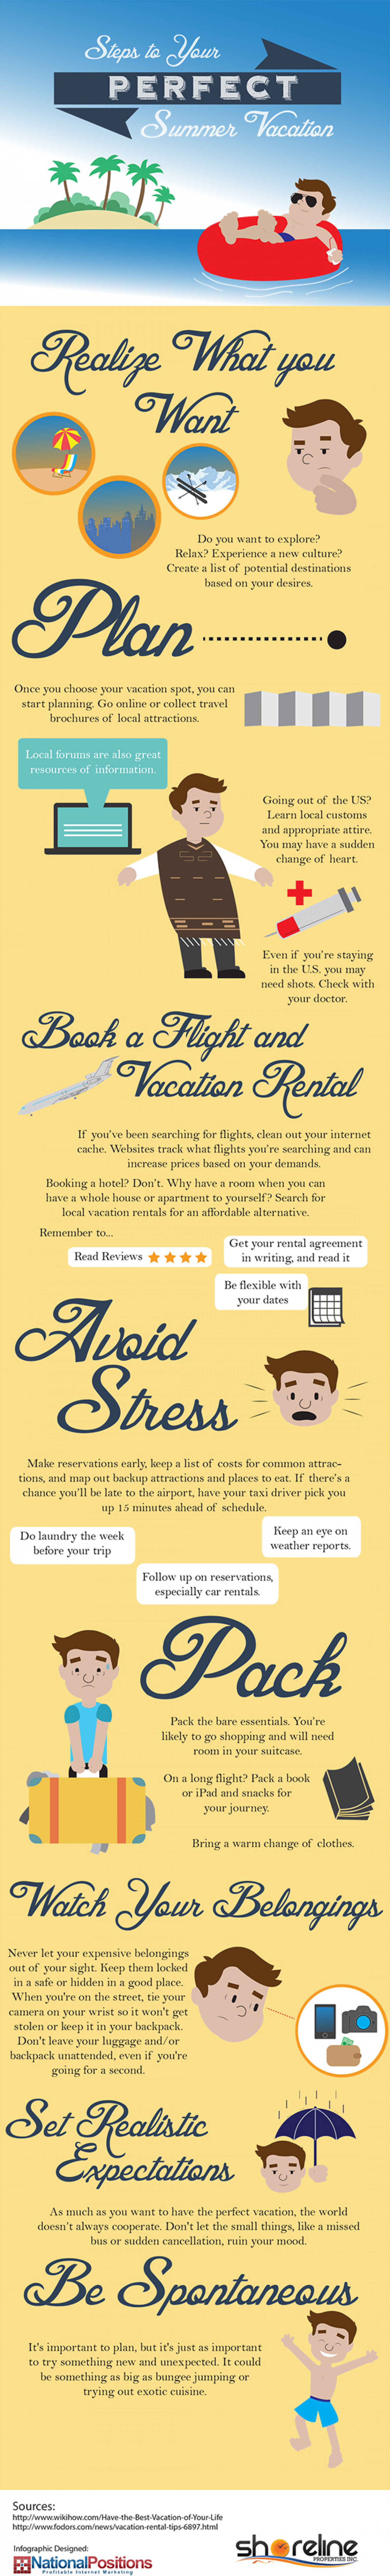 Steps to Your Perfect Summer Vacation Infographic